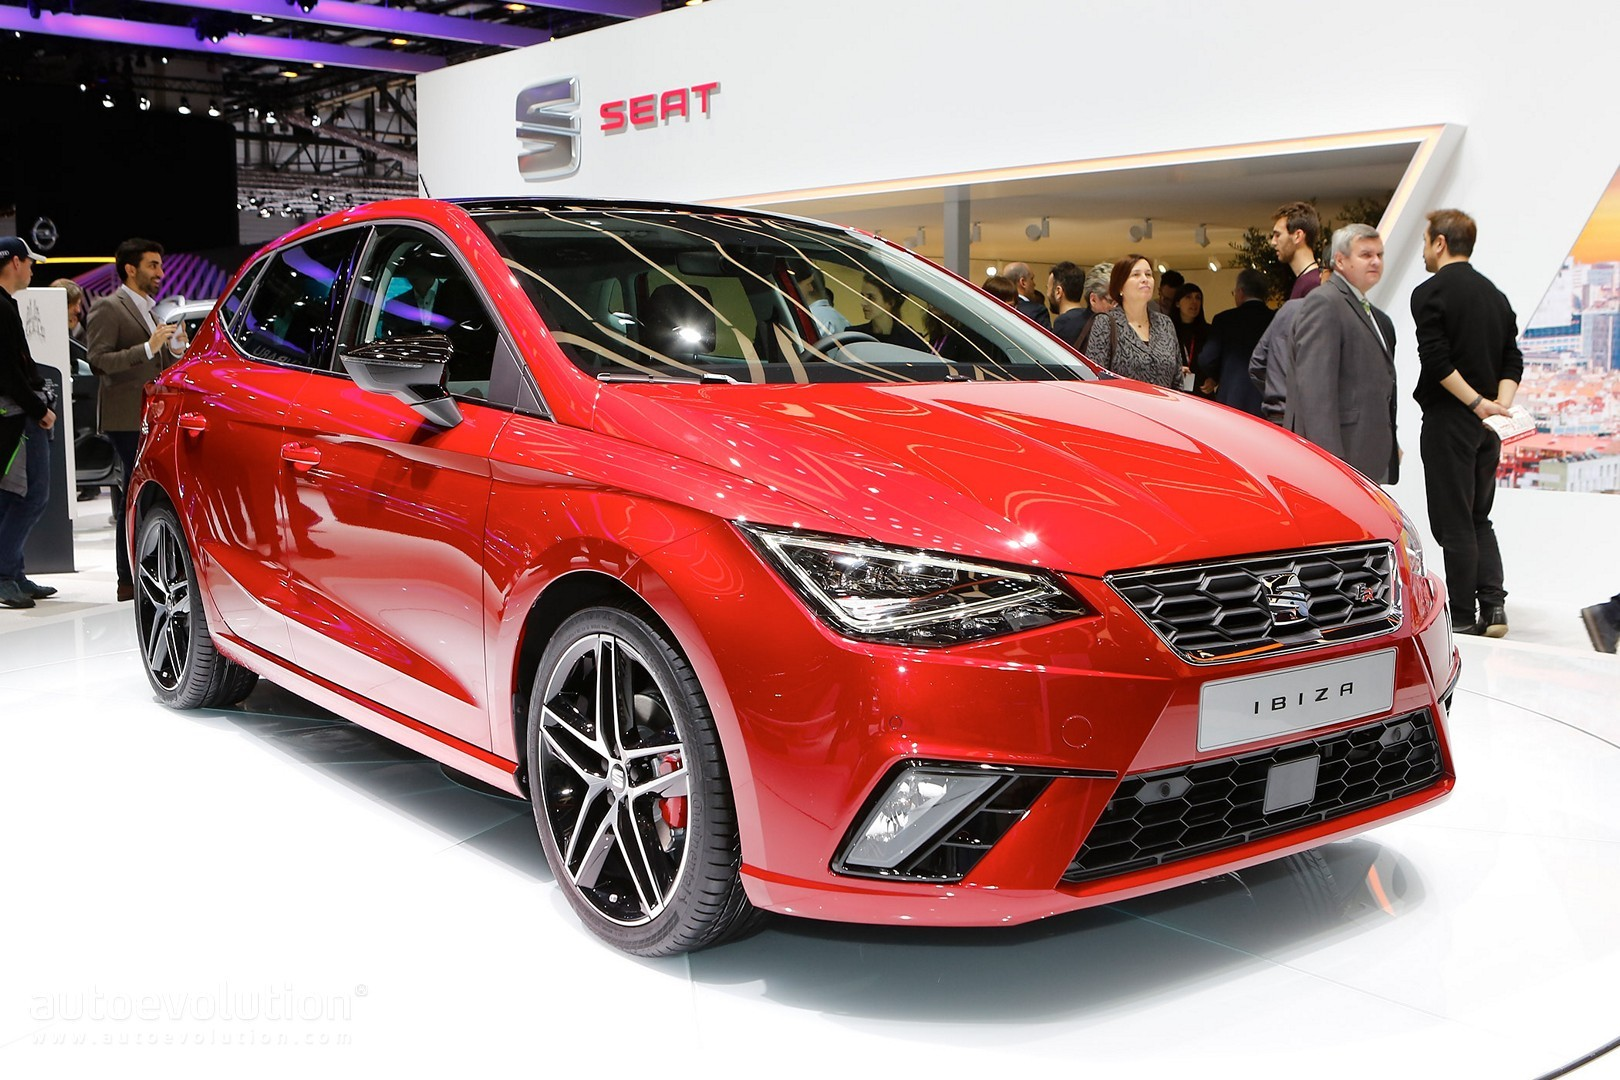 2017 seat ibiza looks like a mini leon in geneva has. Black Bedroom Furniture Sets. Home Design Ideas